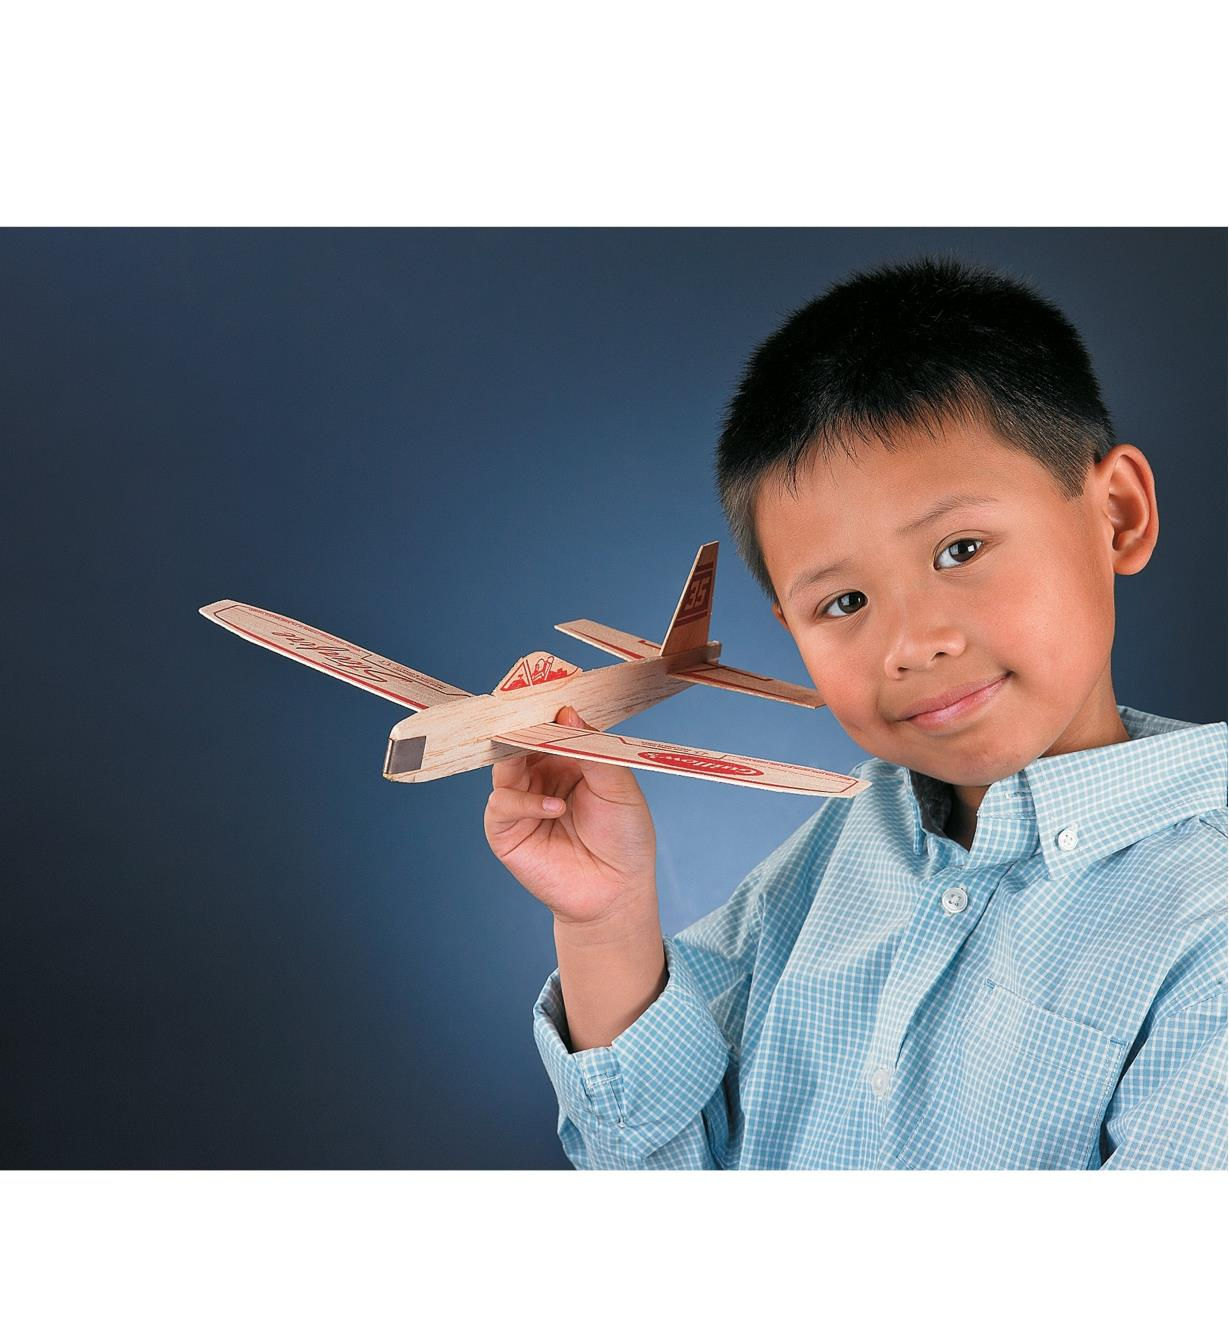 A boy plays with an assembled Balsa Glider